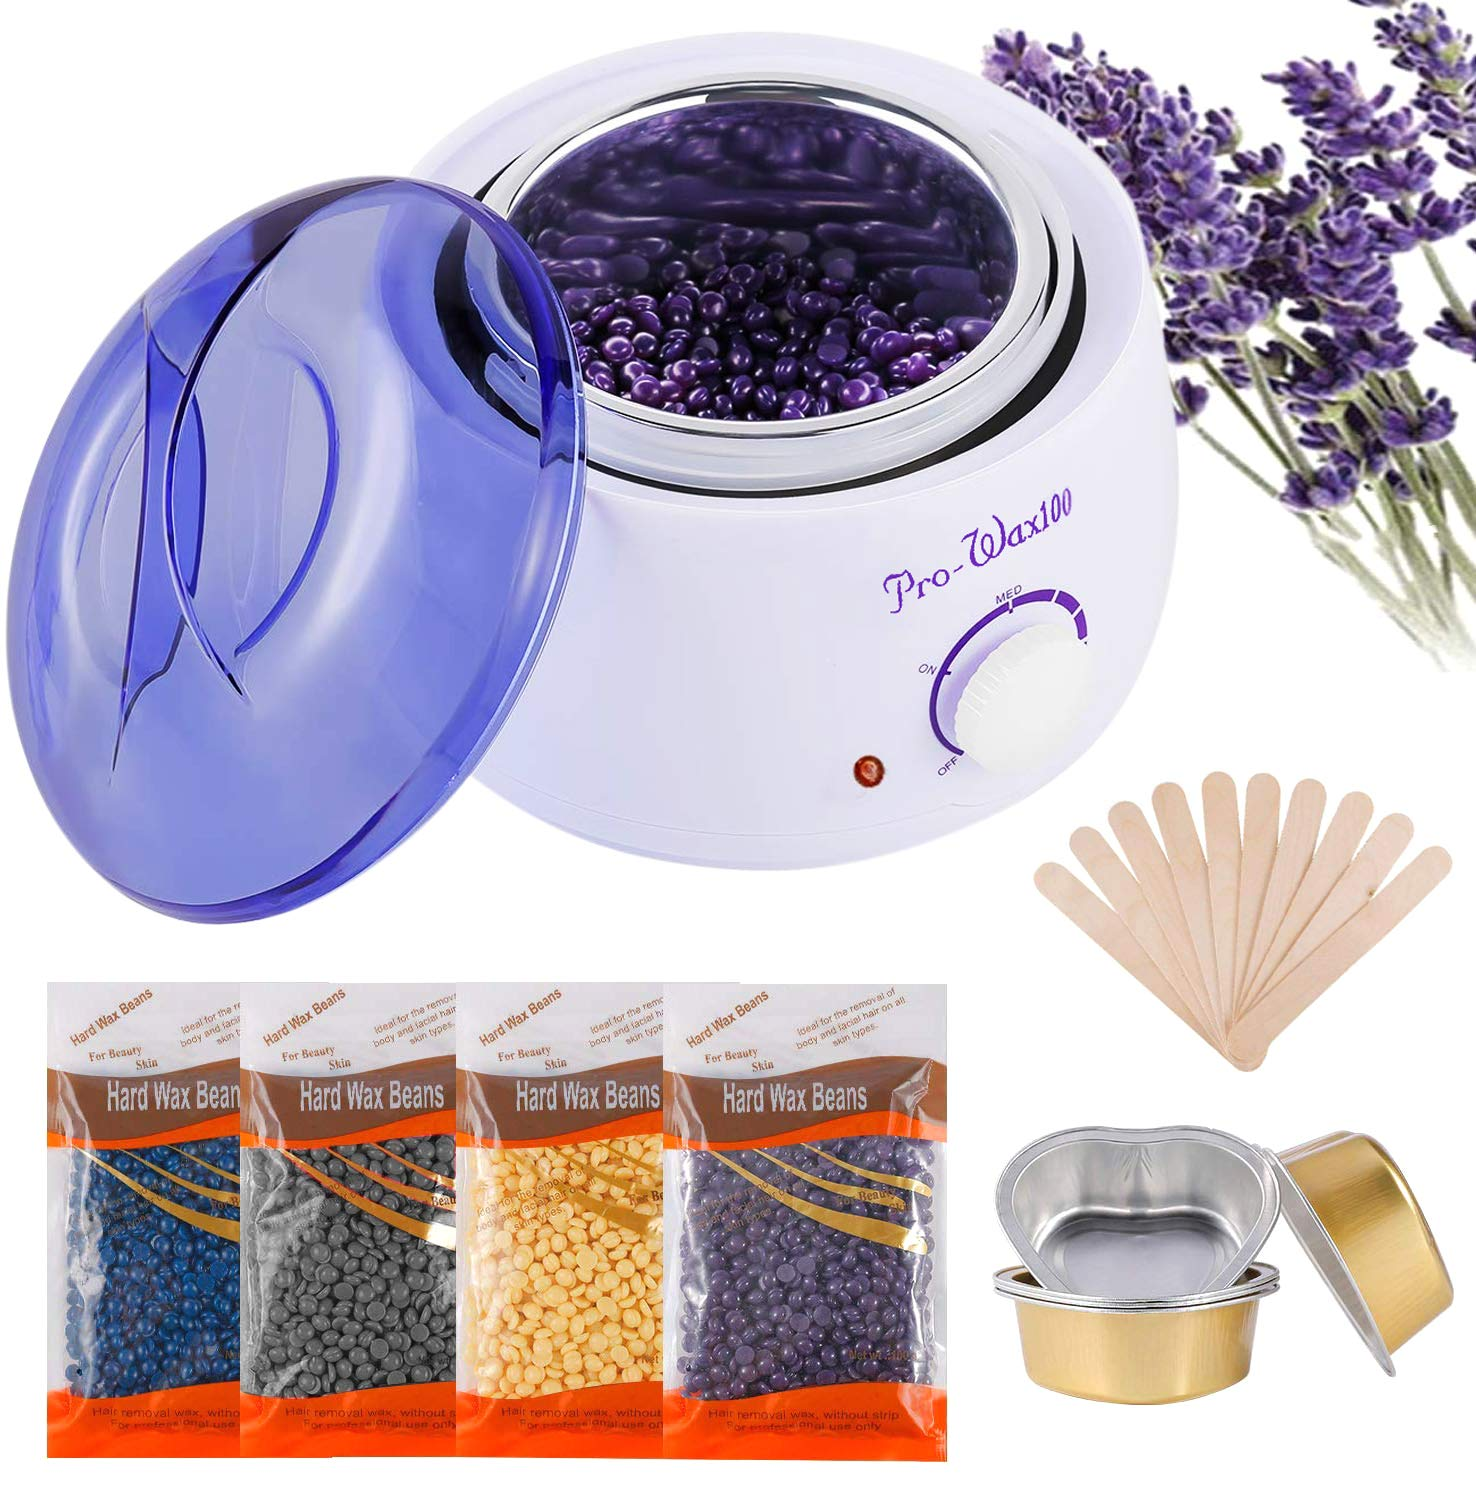 Wax Warmer, Hair Removal Home Waxing Kit with 4 packs Hard Wax Beans and 10 Wax Applicator Sticks for Full Body, Legs, Face, Eyebrows, Bikini Women Men Painless At Home Waxing(white)